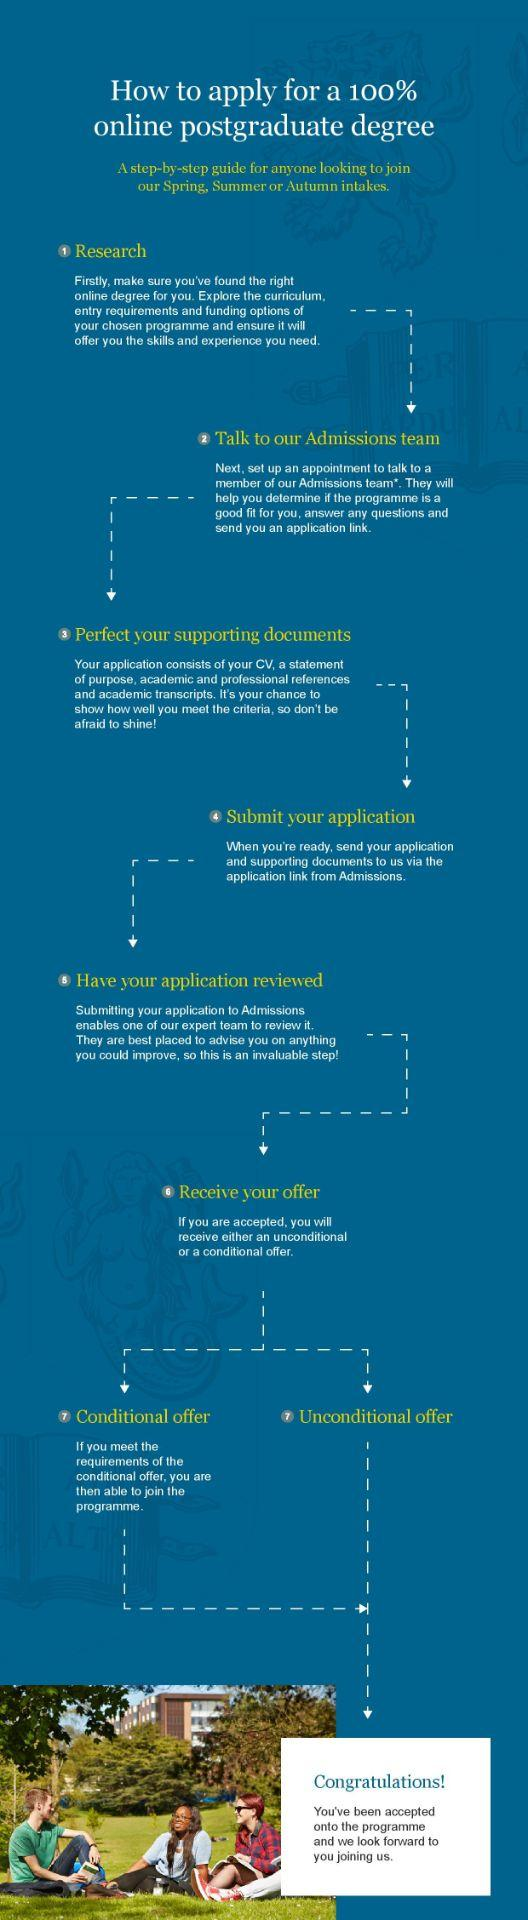 University of Birmingham how to apply for a 100% online postgraduate degree infographic.